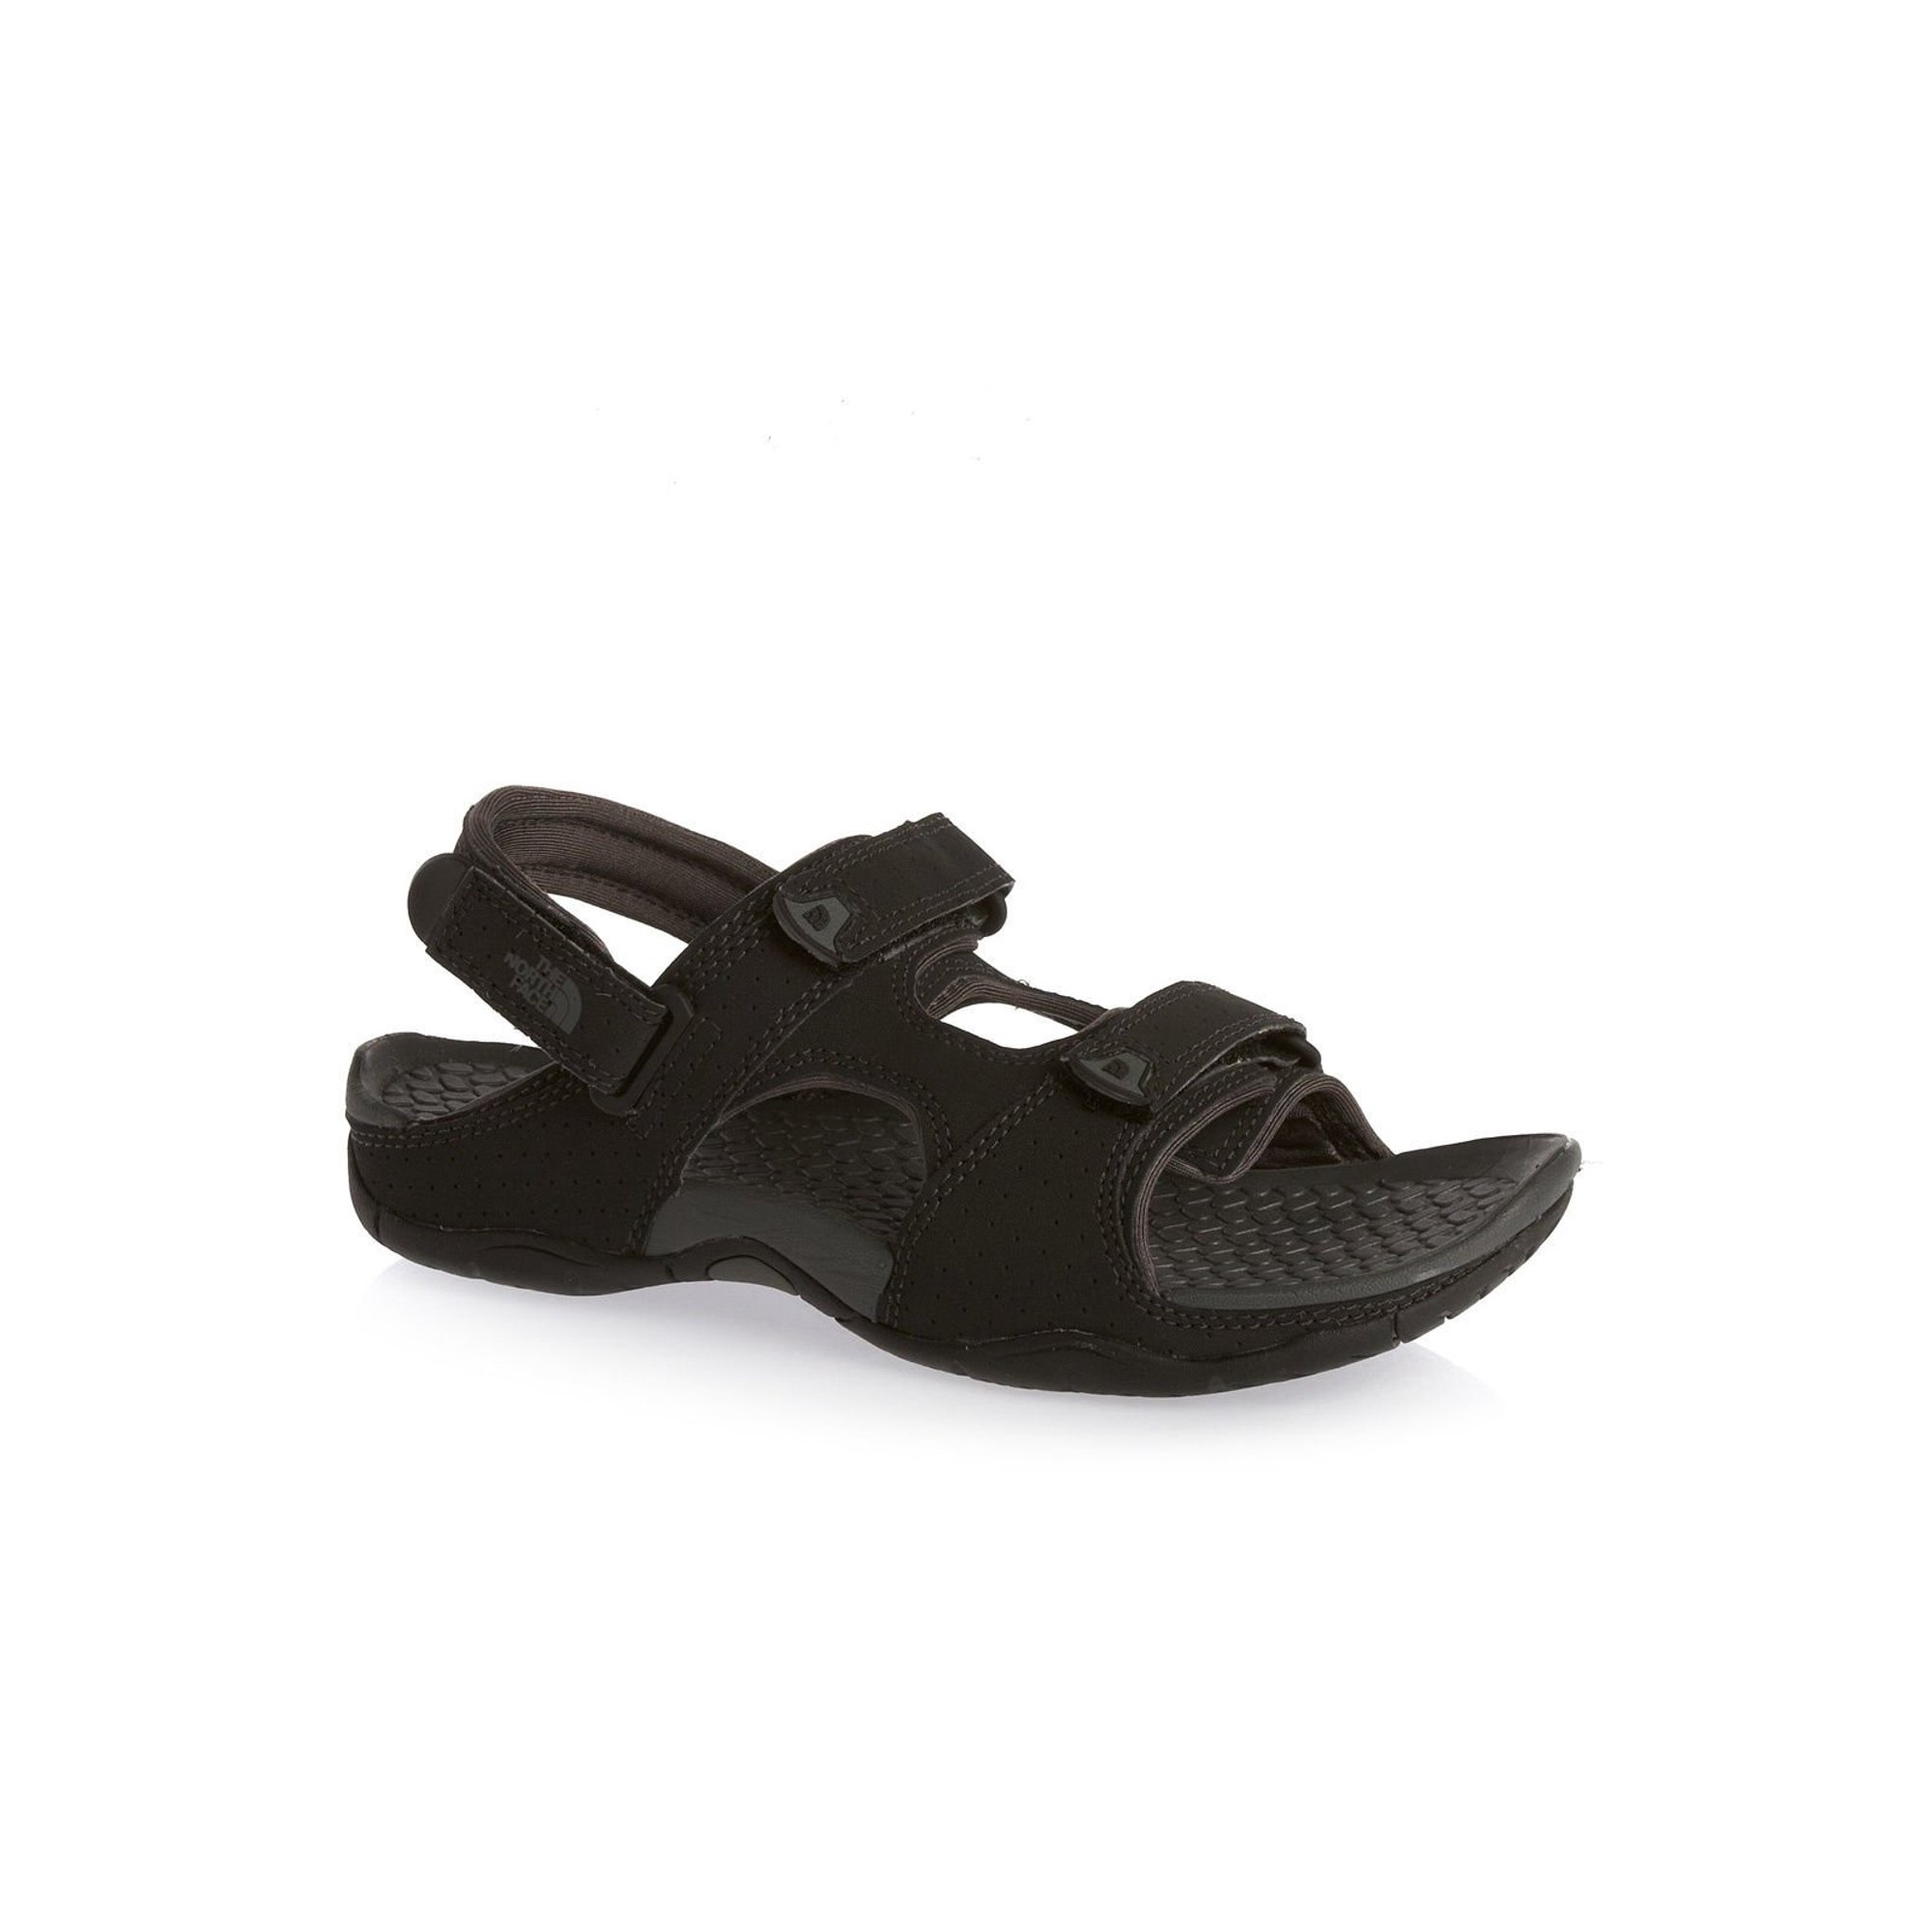 26d56184d The North Face Womens El Rio ll Open Toe Casual Ankle Strap ...